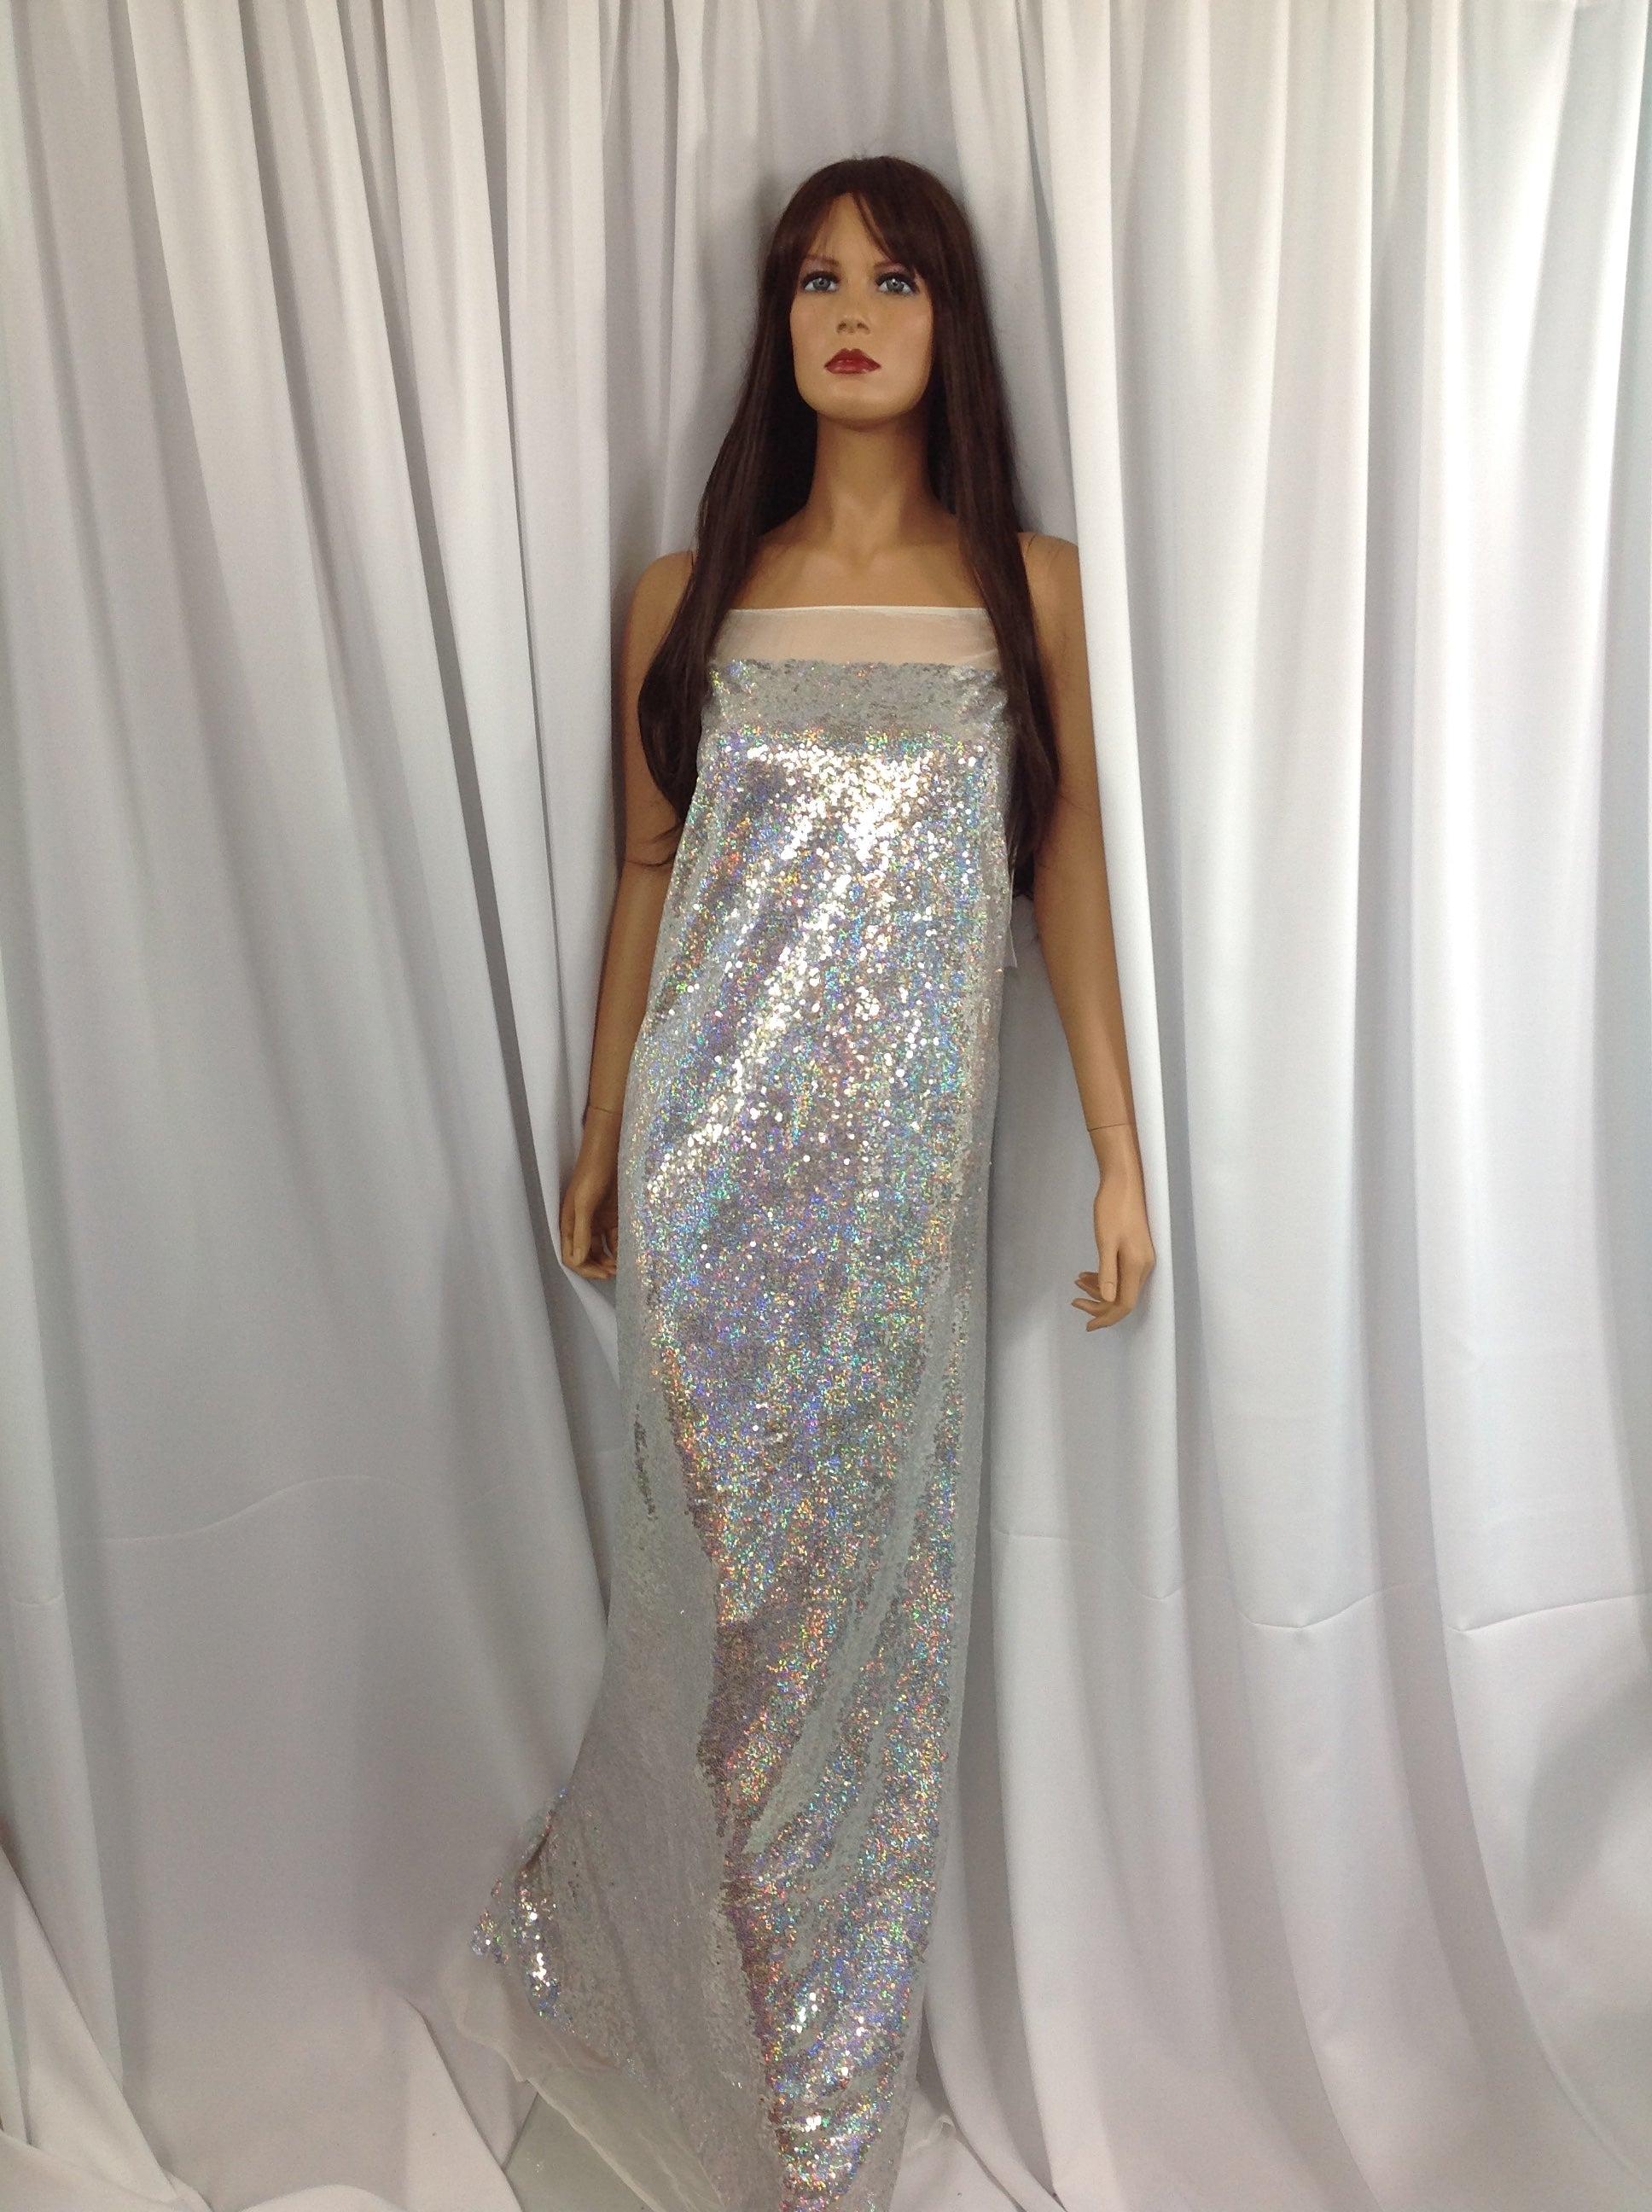 Mermaid Fabric - Multicolor Silver Mini Sequins Embroidered Mesh Dress Top By The yard.